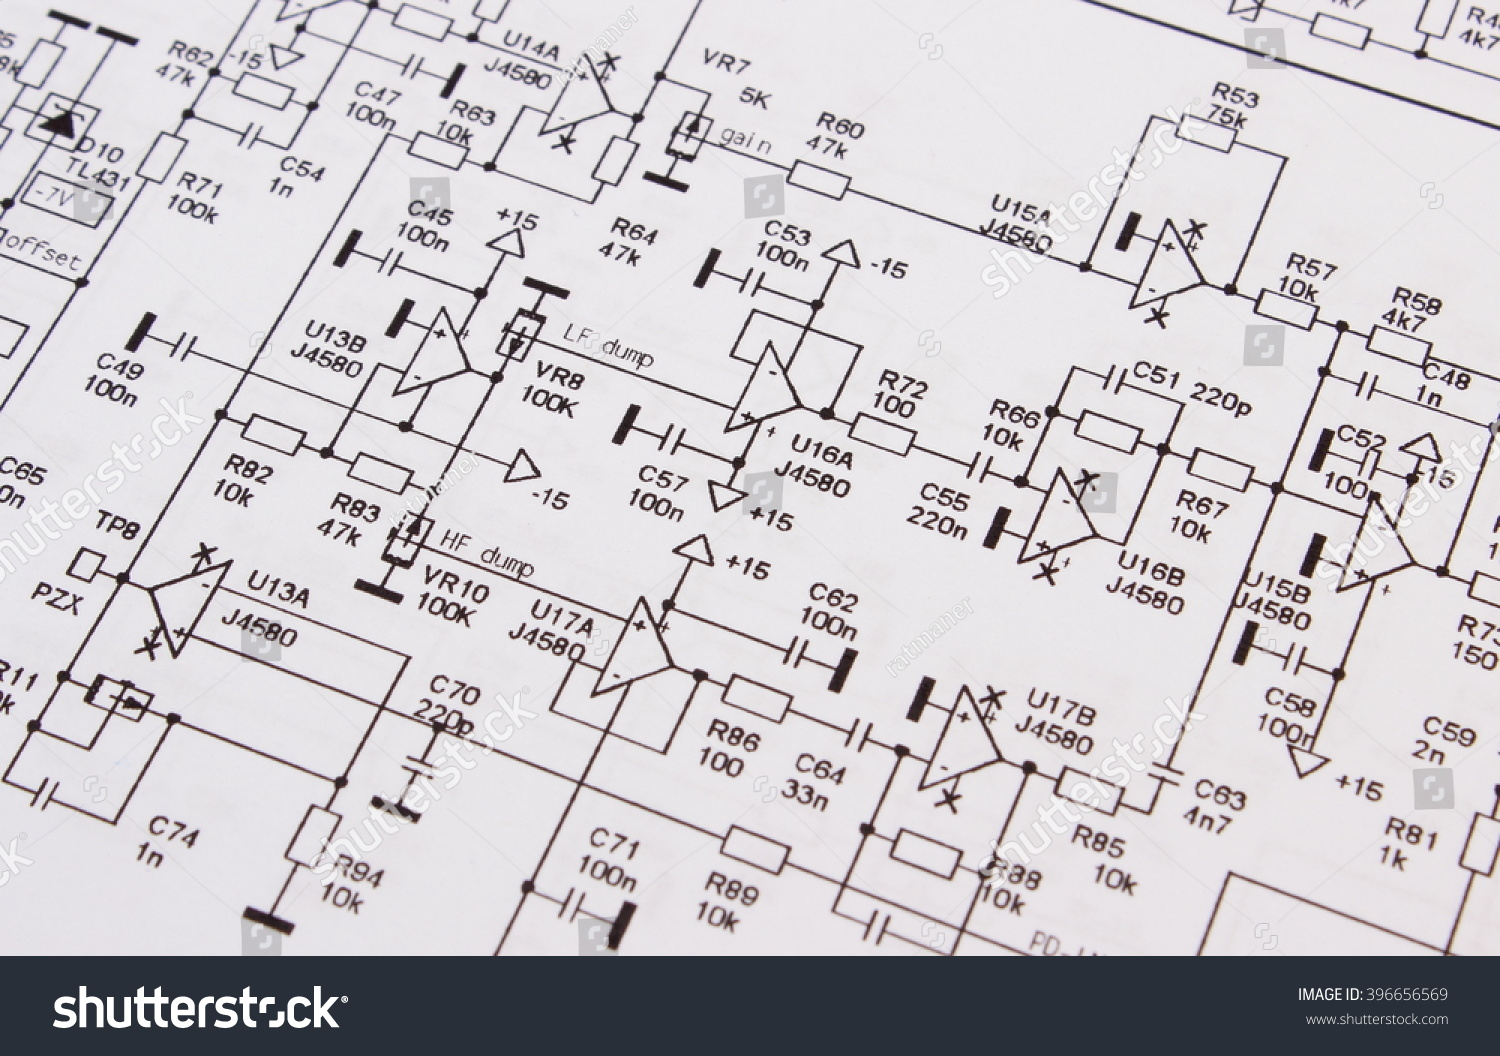 Diagram Electronics Printed Circuit Board Drawing Stock Photo ...